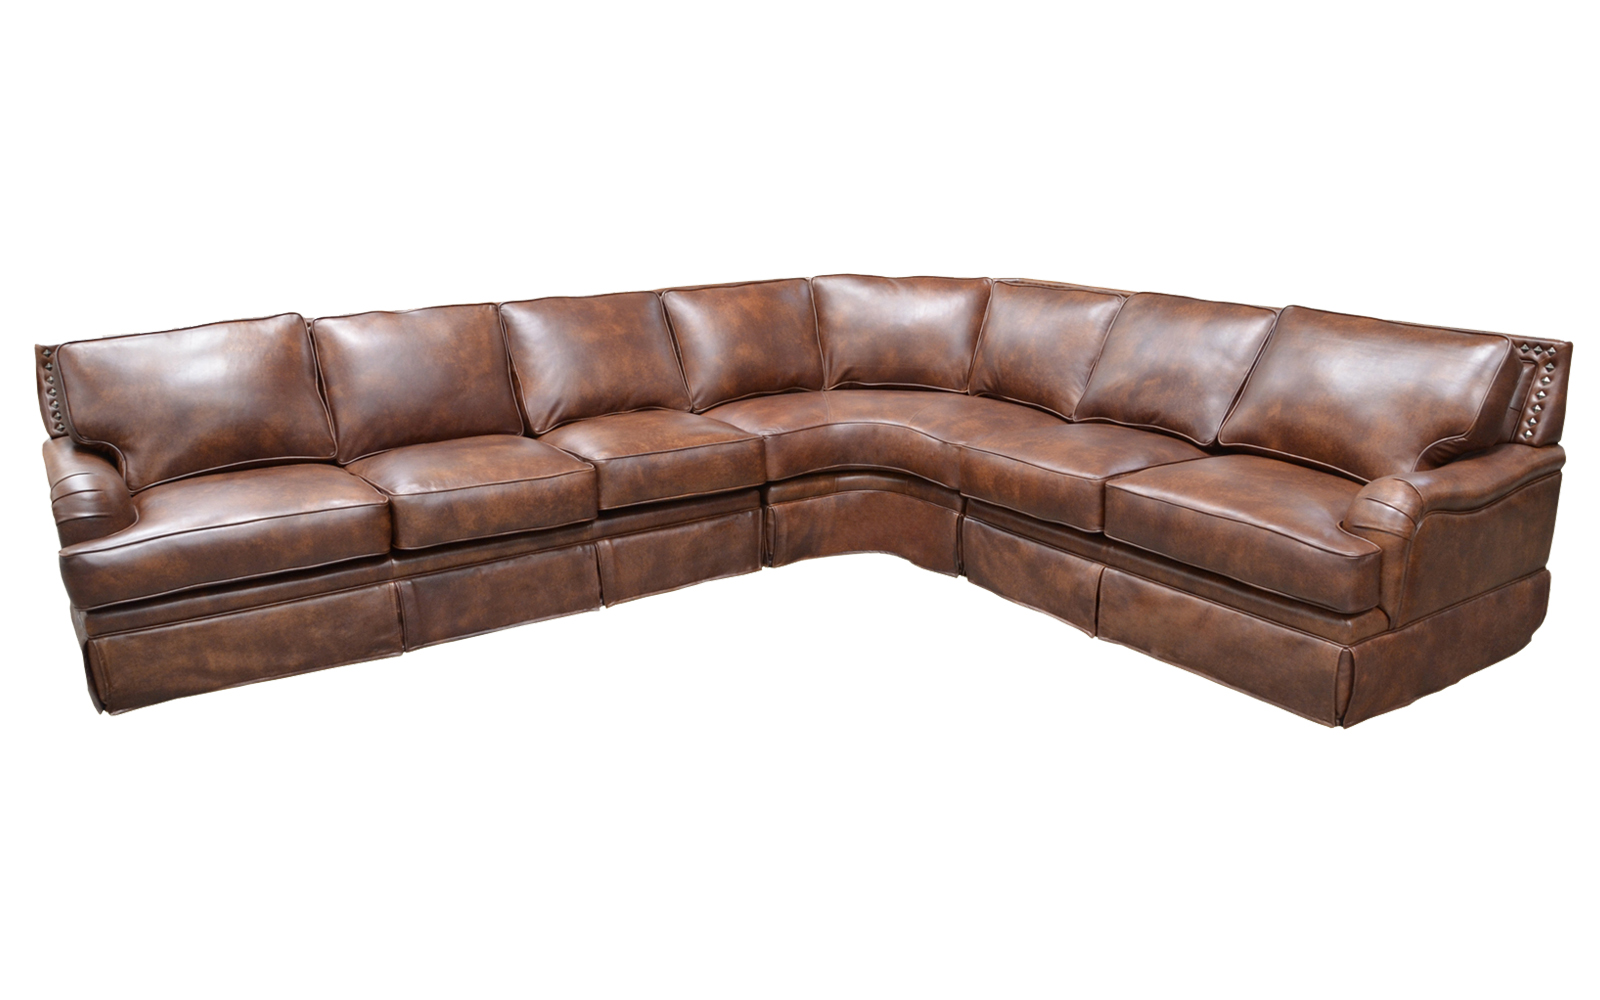 Hacienda Sectional Arizona Leather Interiors